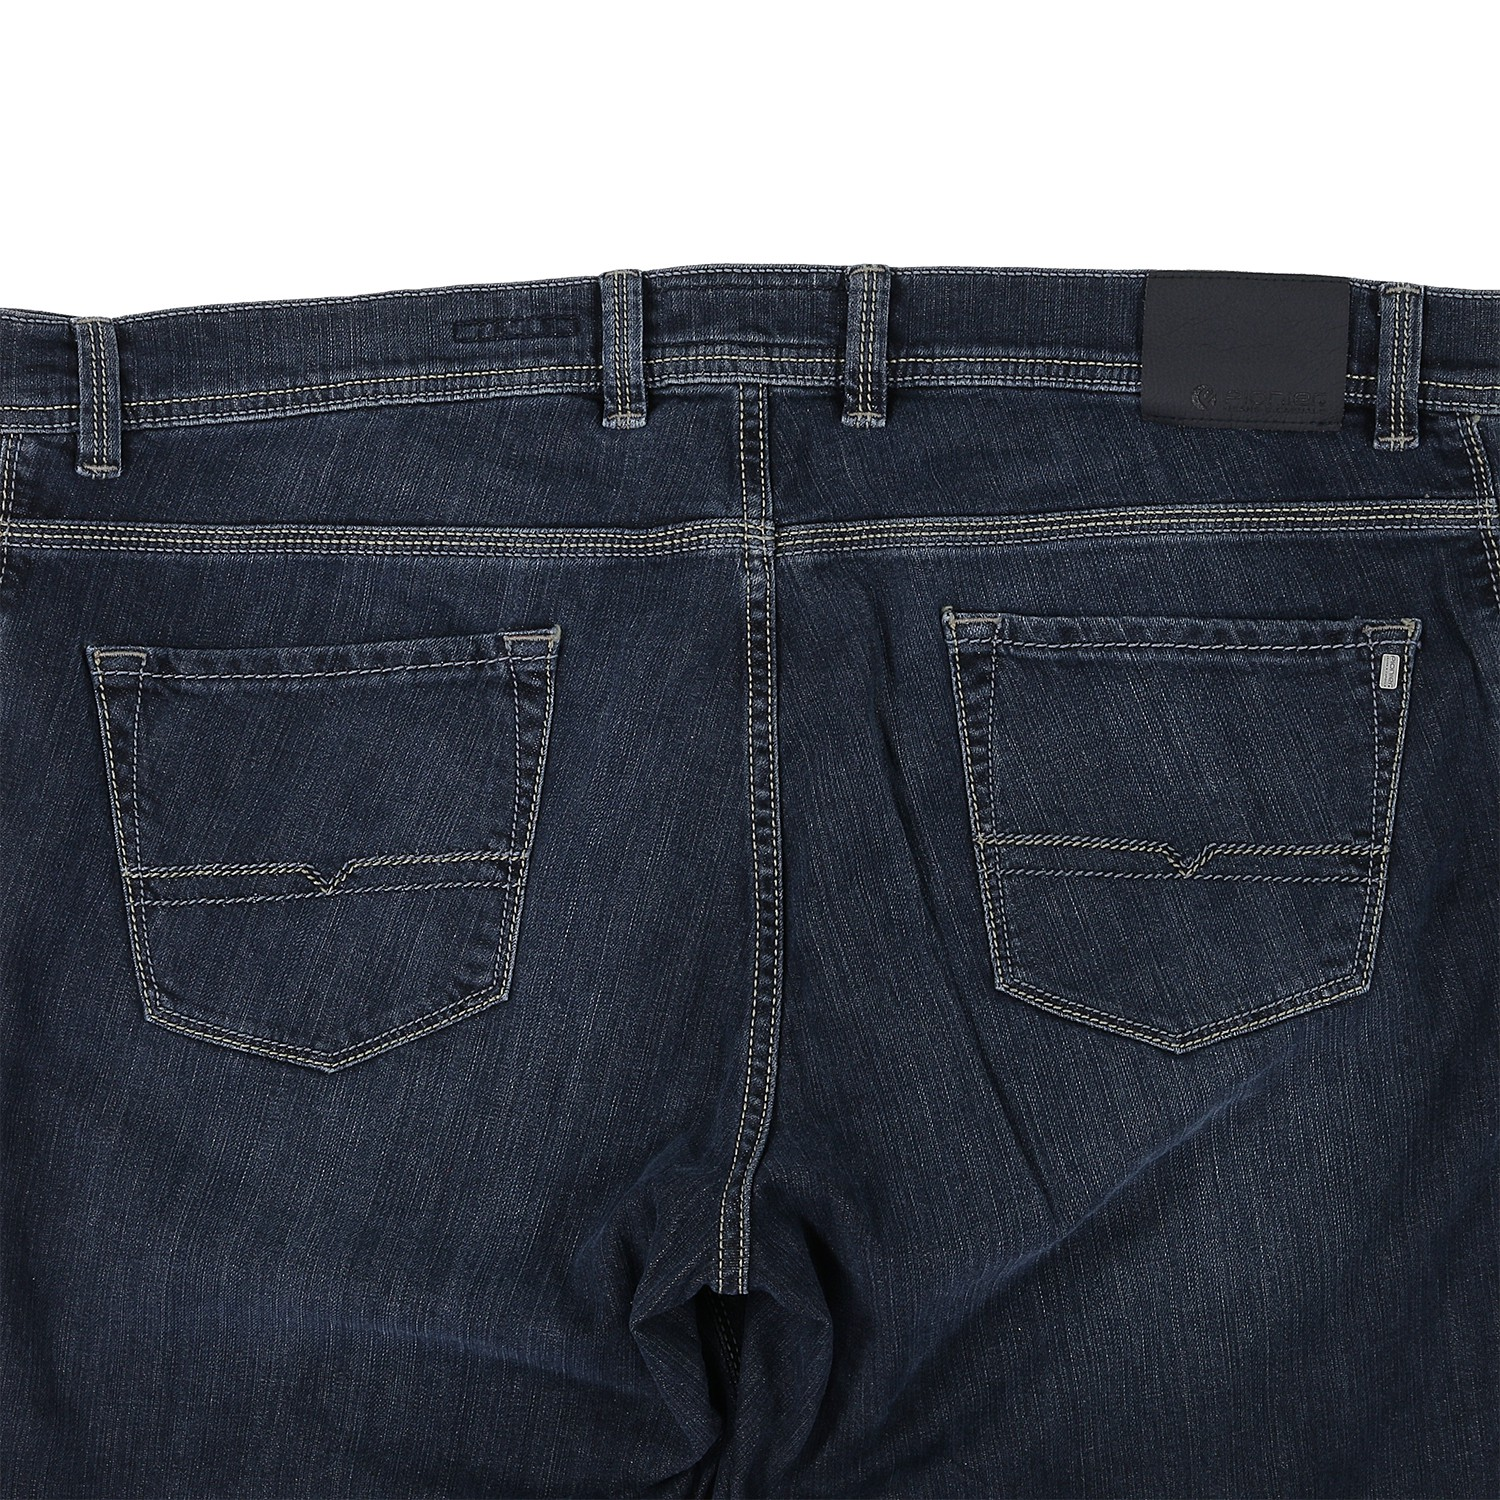 Detail Image to XXL Jeans by Pionier for men - up to sizes 36 and 64